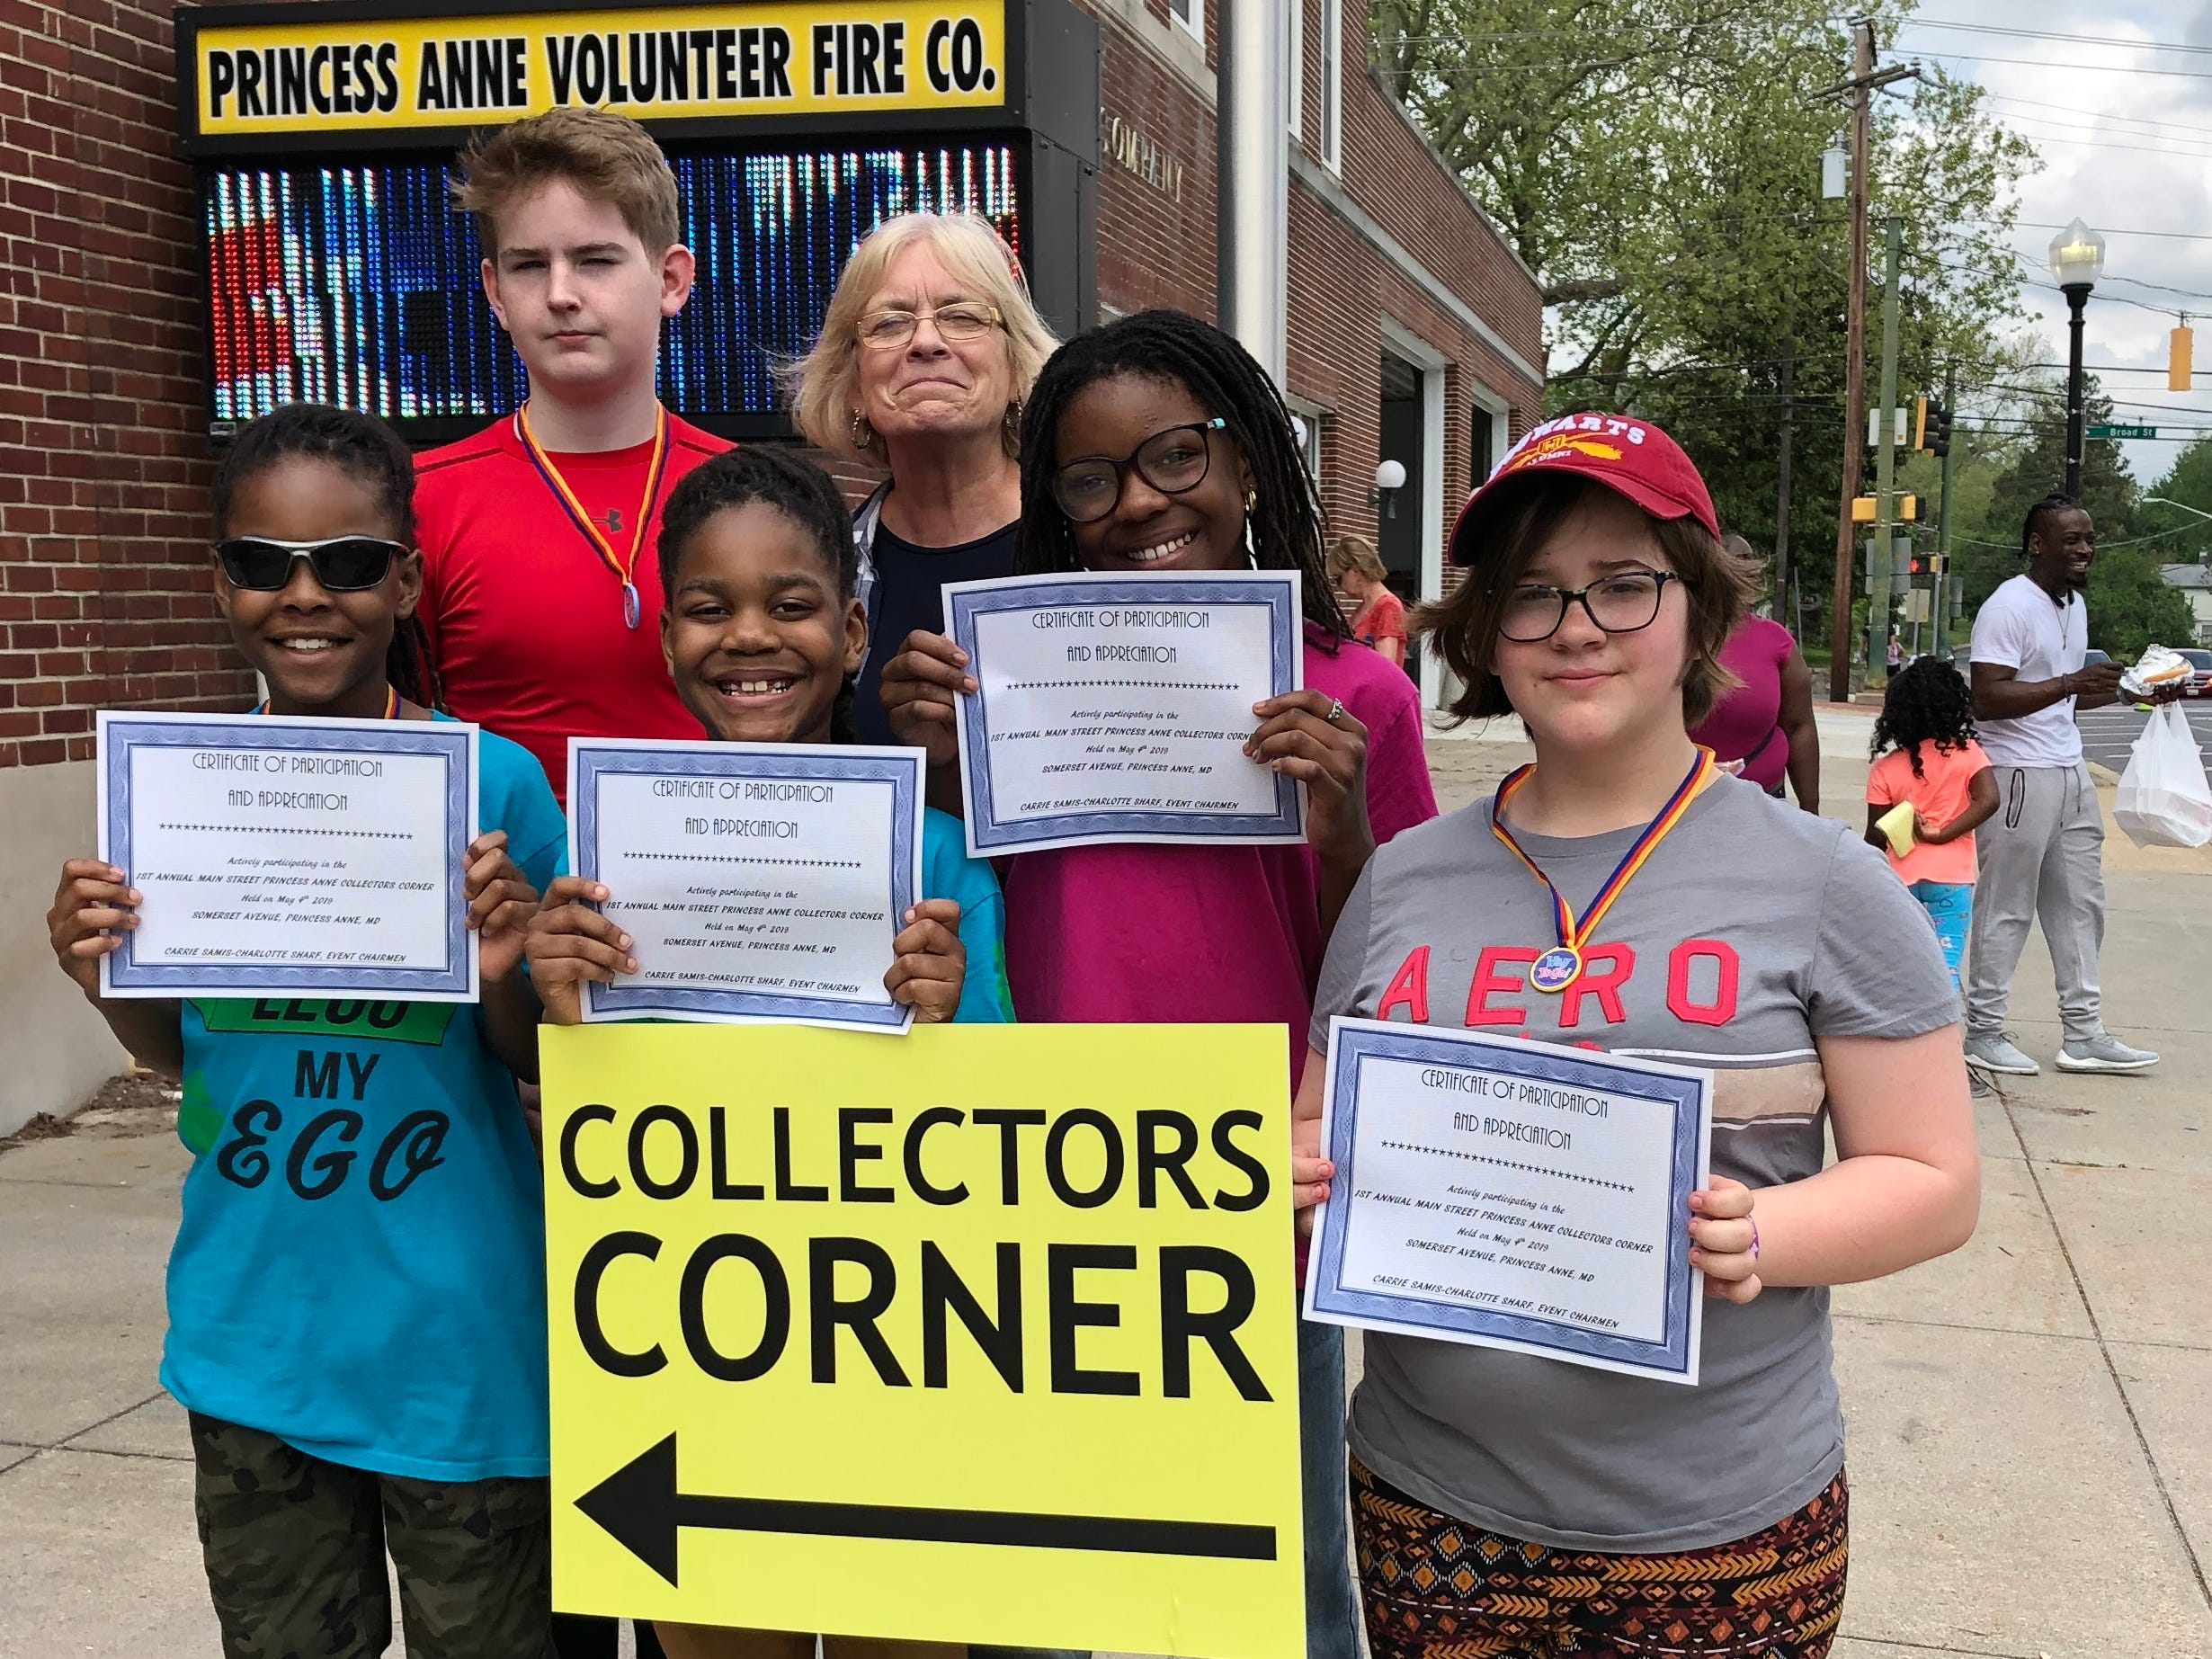 Main Street Princess Anne sponsored a new addition to Street Fest 2019, the Collectors Corner. Adult and youth exhibitors displayed their favorite collections. Youth exhibitors included, front from left, Zariyon Hatcher, 10, Zorren Hatcher, 8, Zaina Hatcher, 12, and Michelle Jones, 13. In the back are, Caleb Parks, 12, left and Dee Savarese, member of the Main Street Princess Anne Board of Directors.